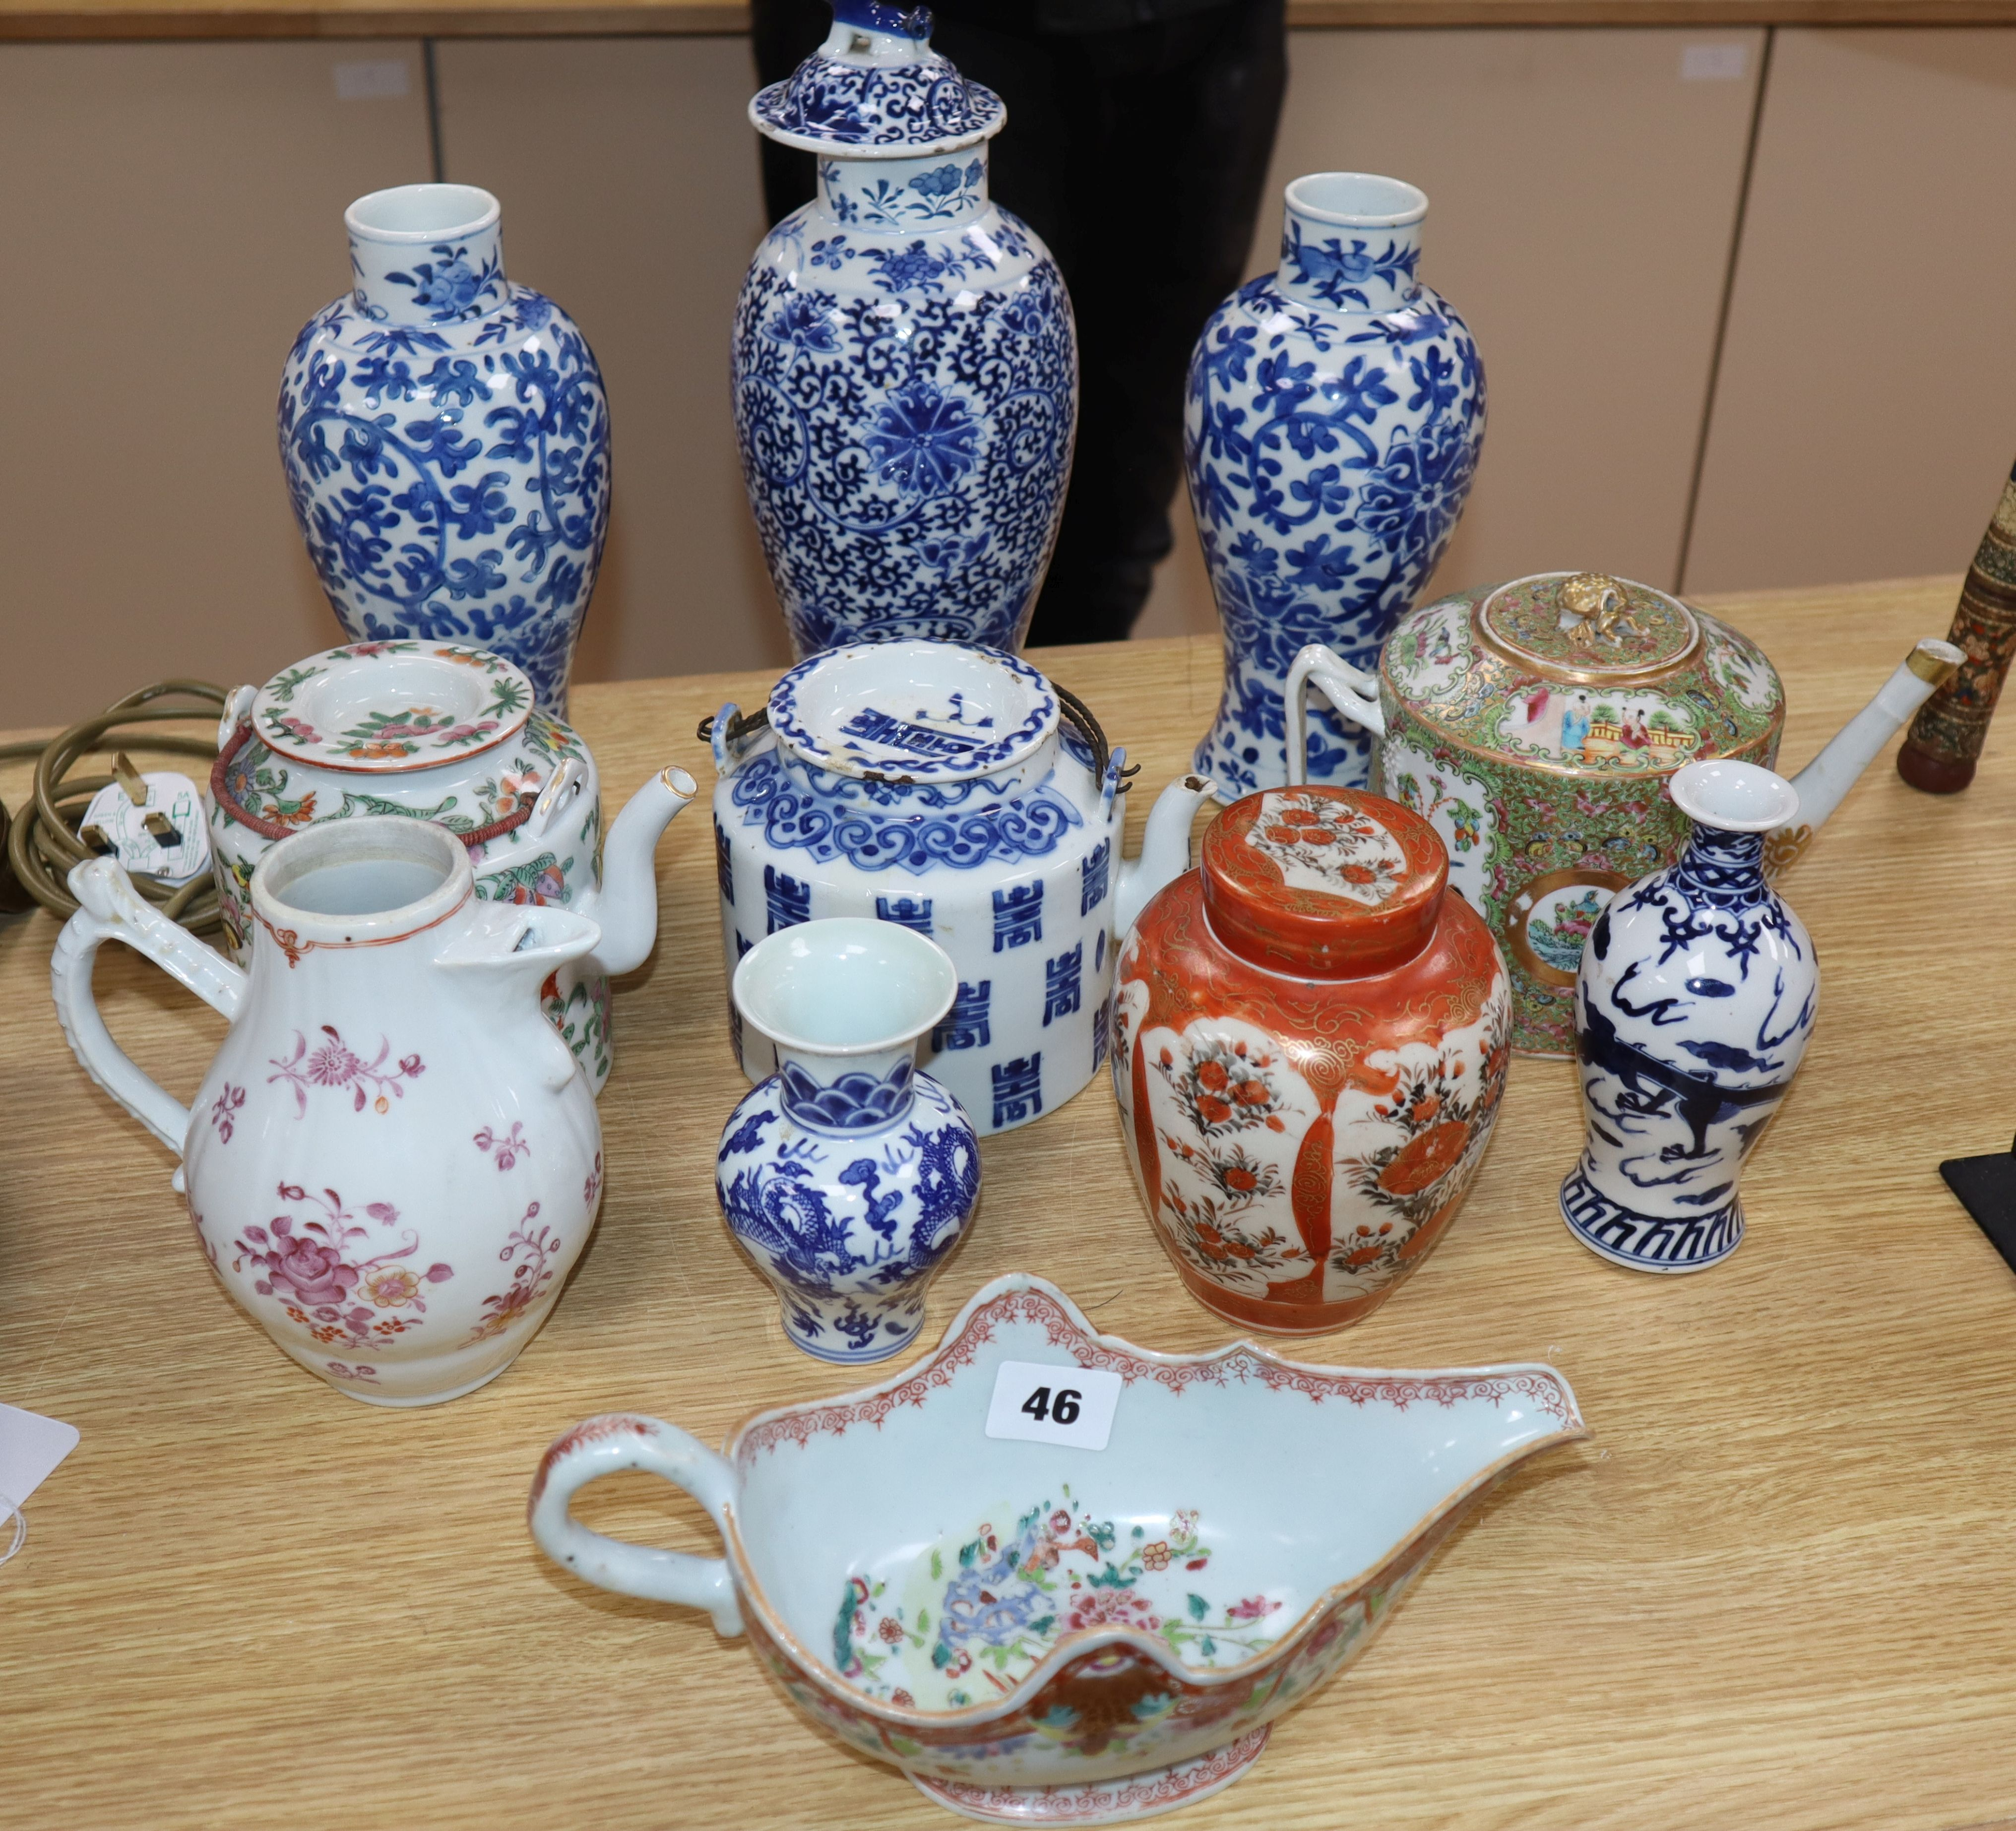 Lot 46 - A group of 18th and 19th century Chinese porcelain vessels and three other vases tallest 31cm